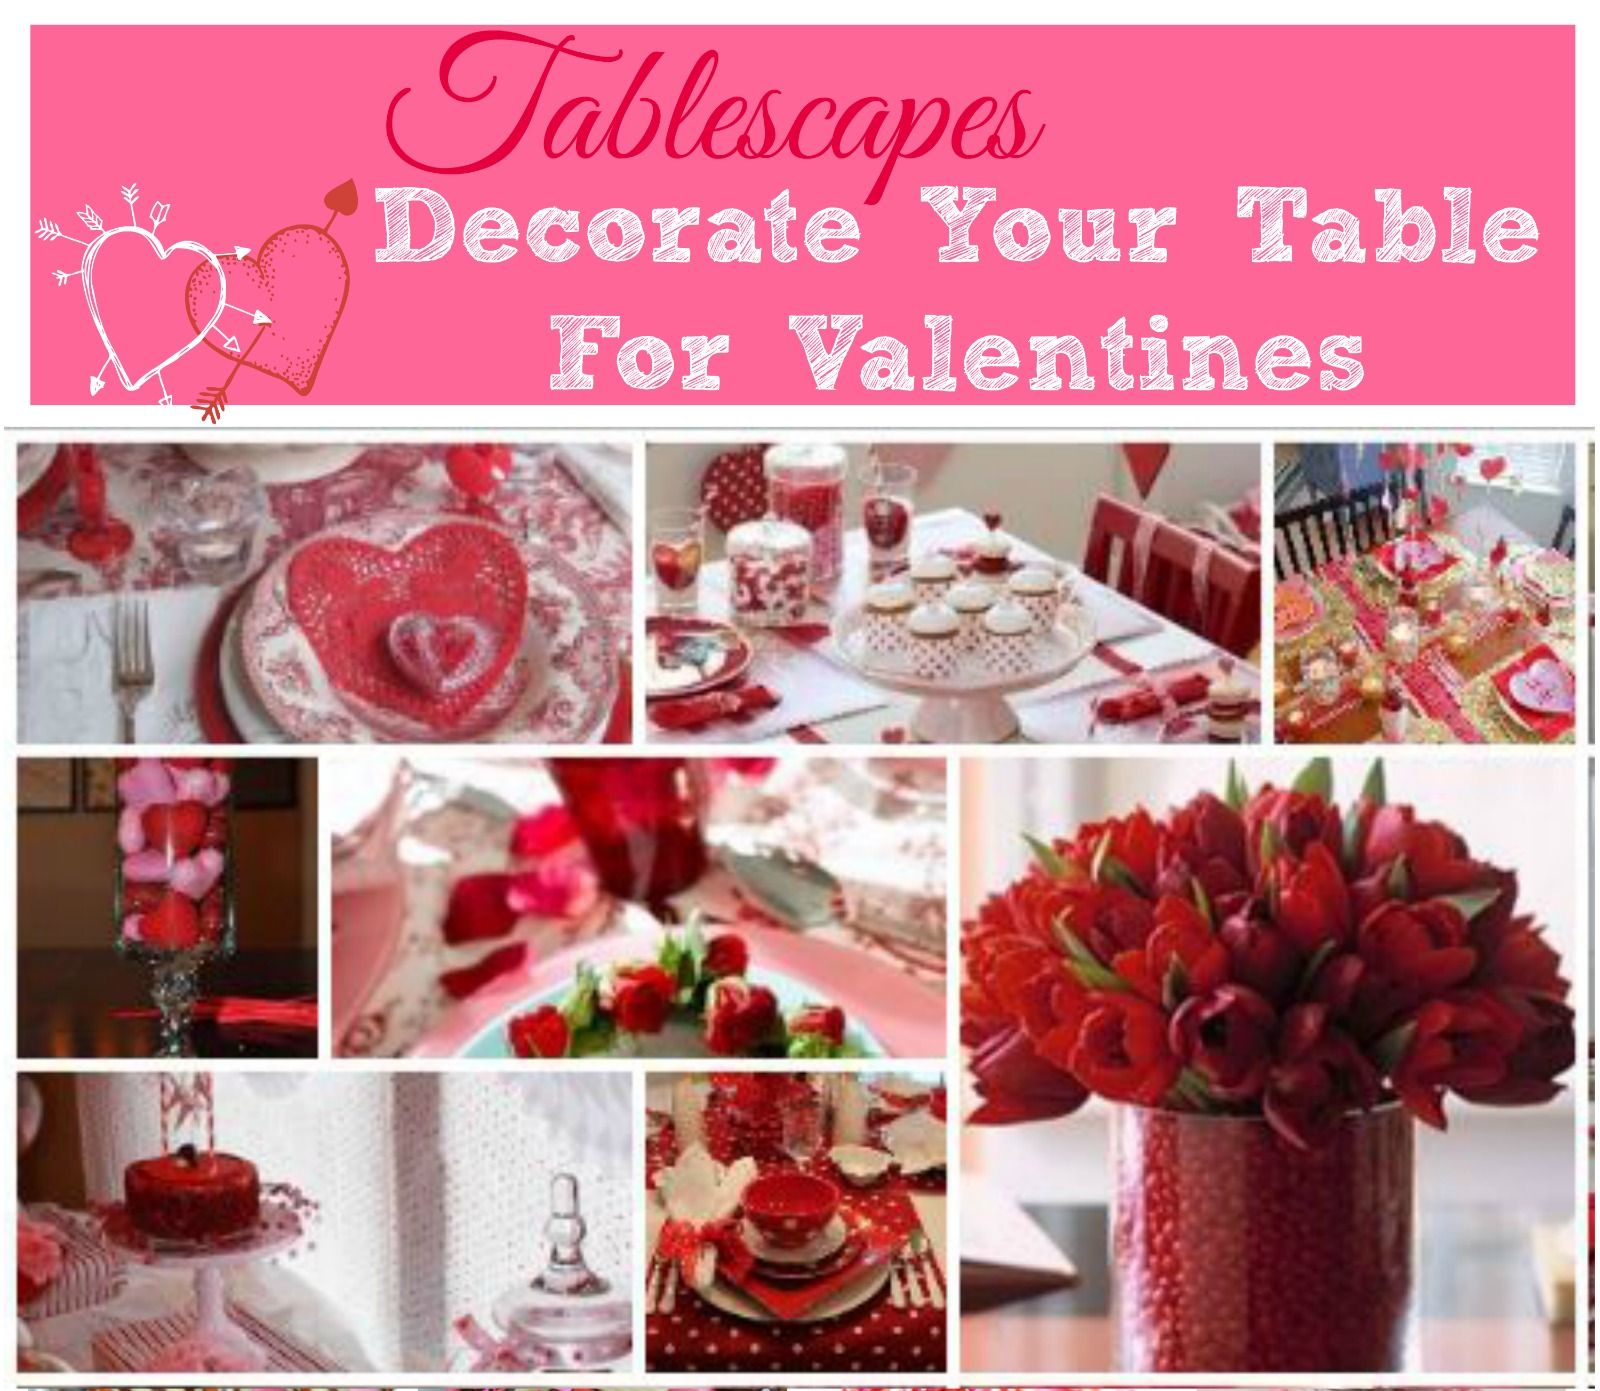 Tablescapes For Valentines~♥~ Have you ever wondered how to set up a Valentine party for a group of friends or your beu? With Valentines just around the corner I thought it would be fun to showcase some ideas for tables centered around Valentnes and parties.